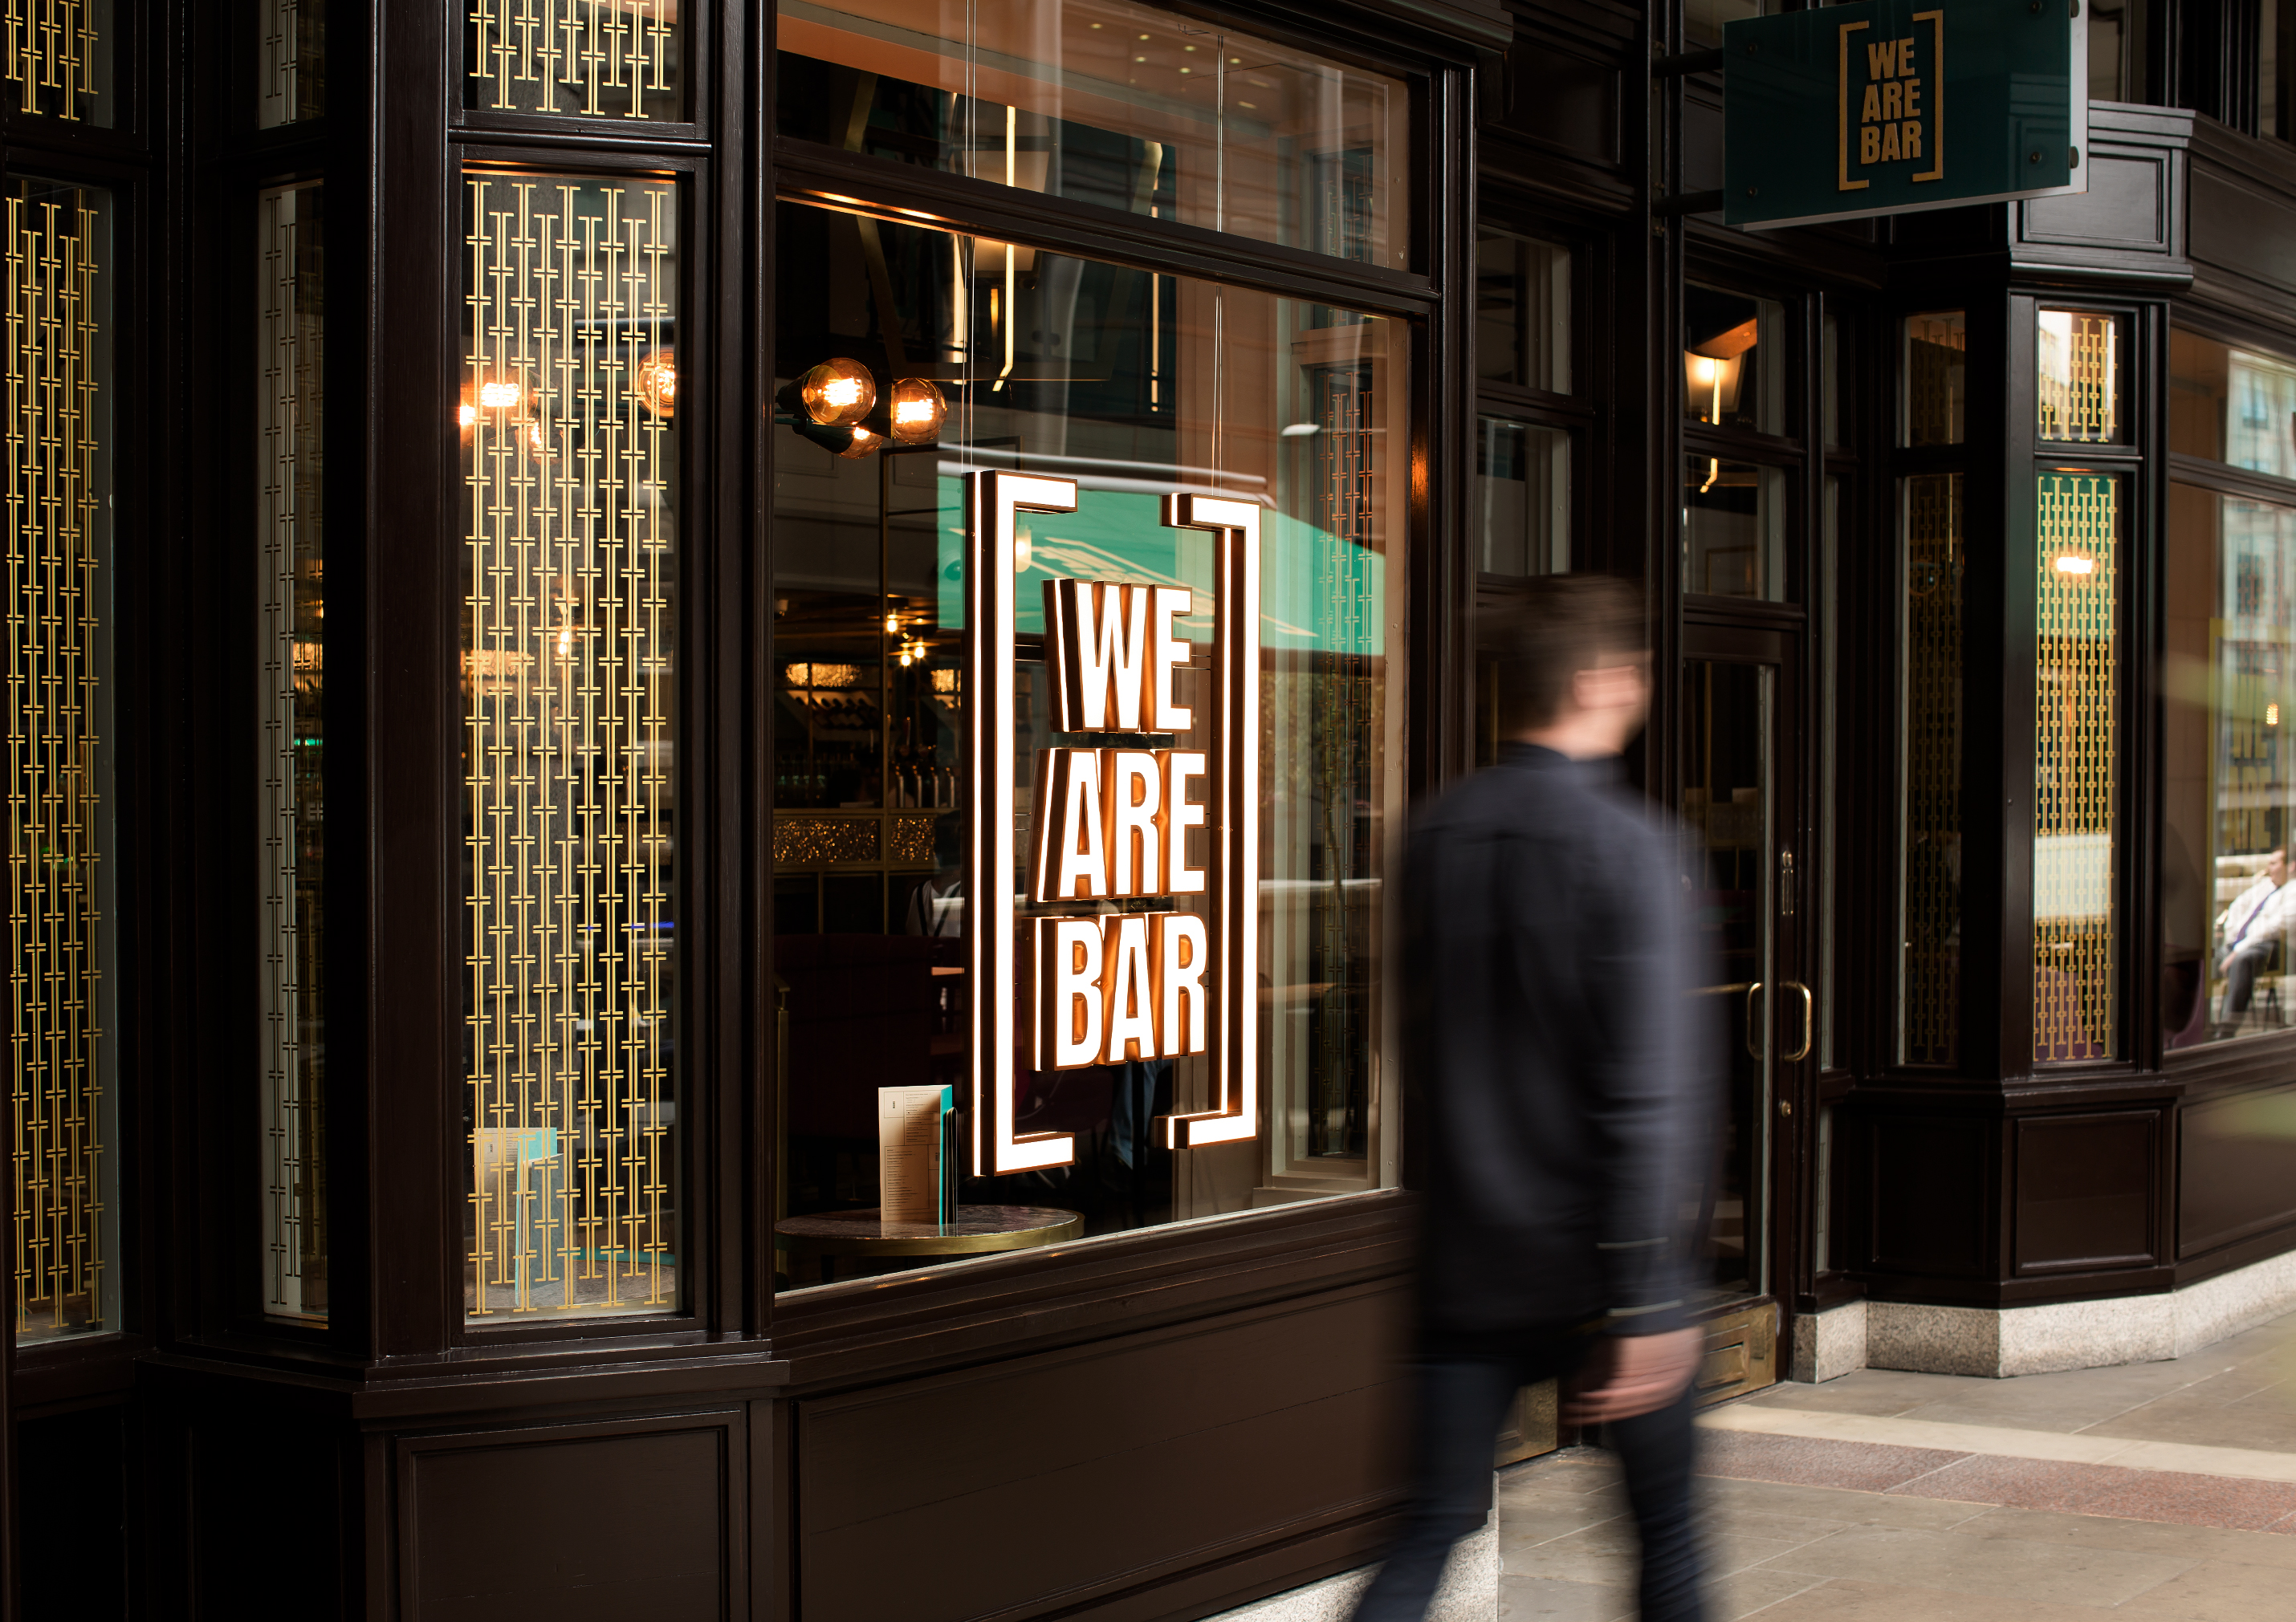 1-we-are-bar-logo-signage